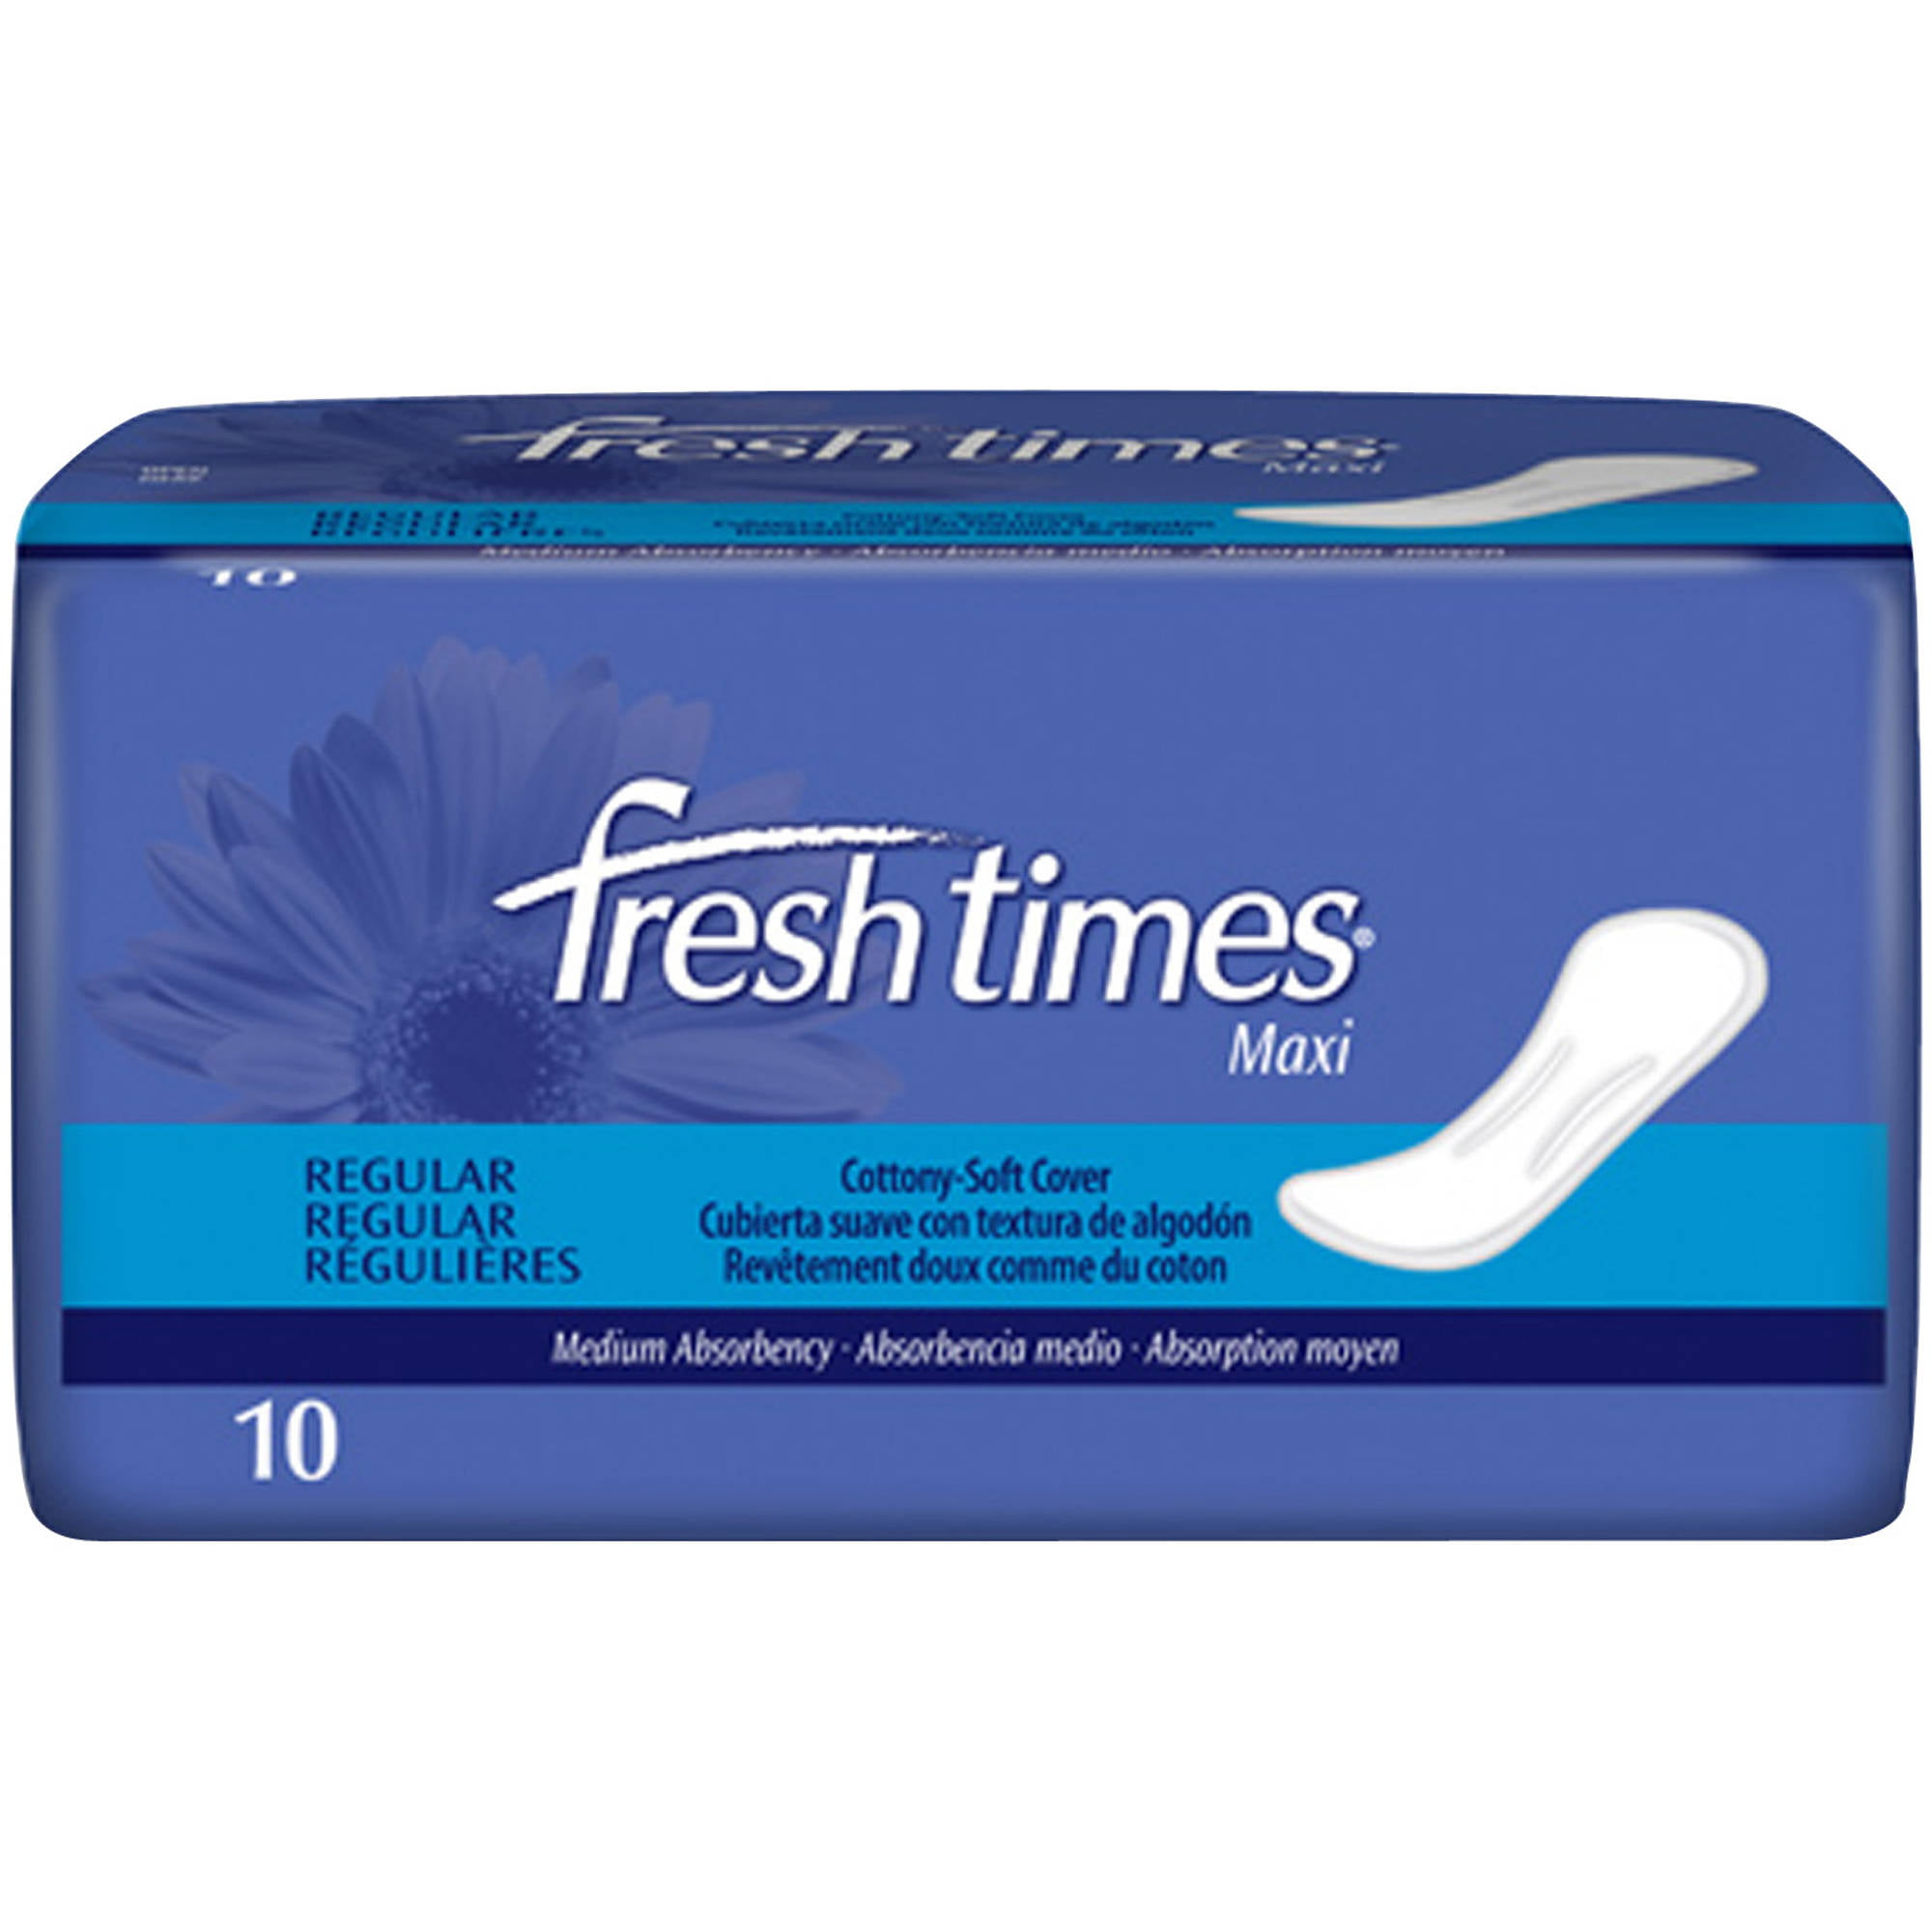 Femtex Super Absorbency Tampons, 8ct